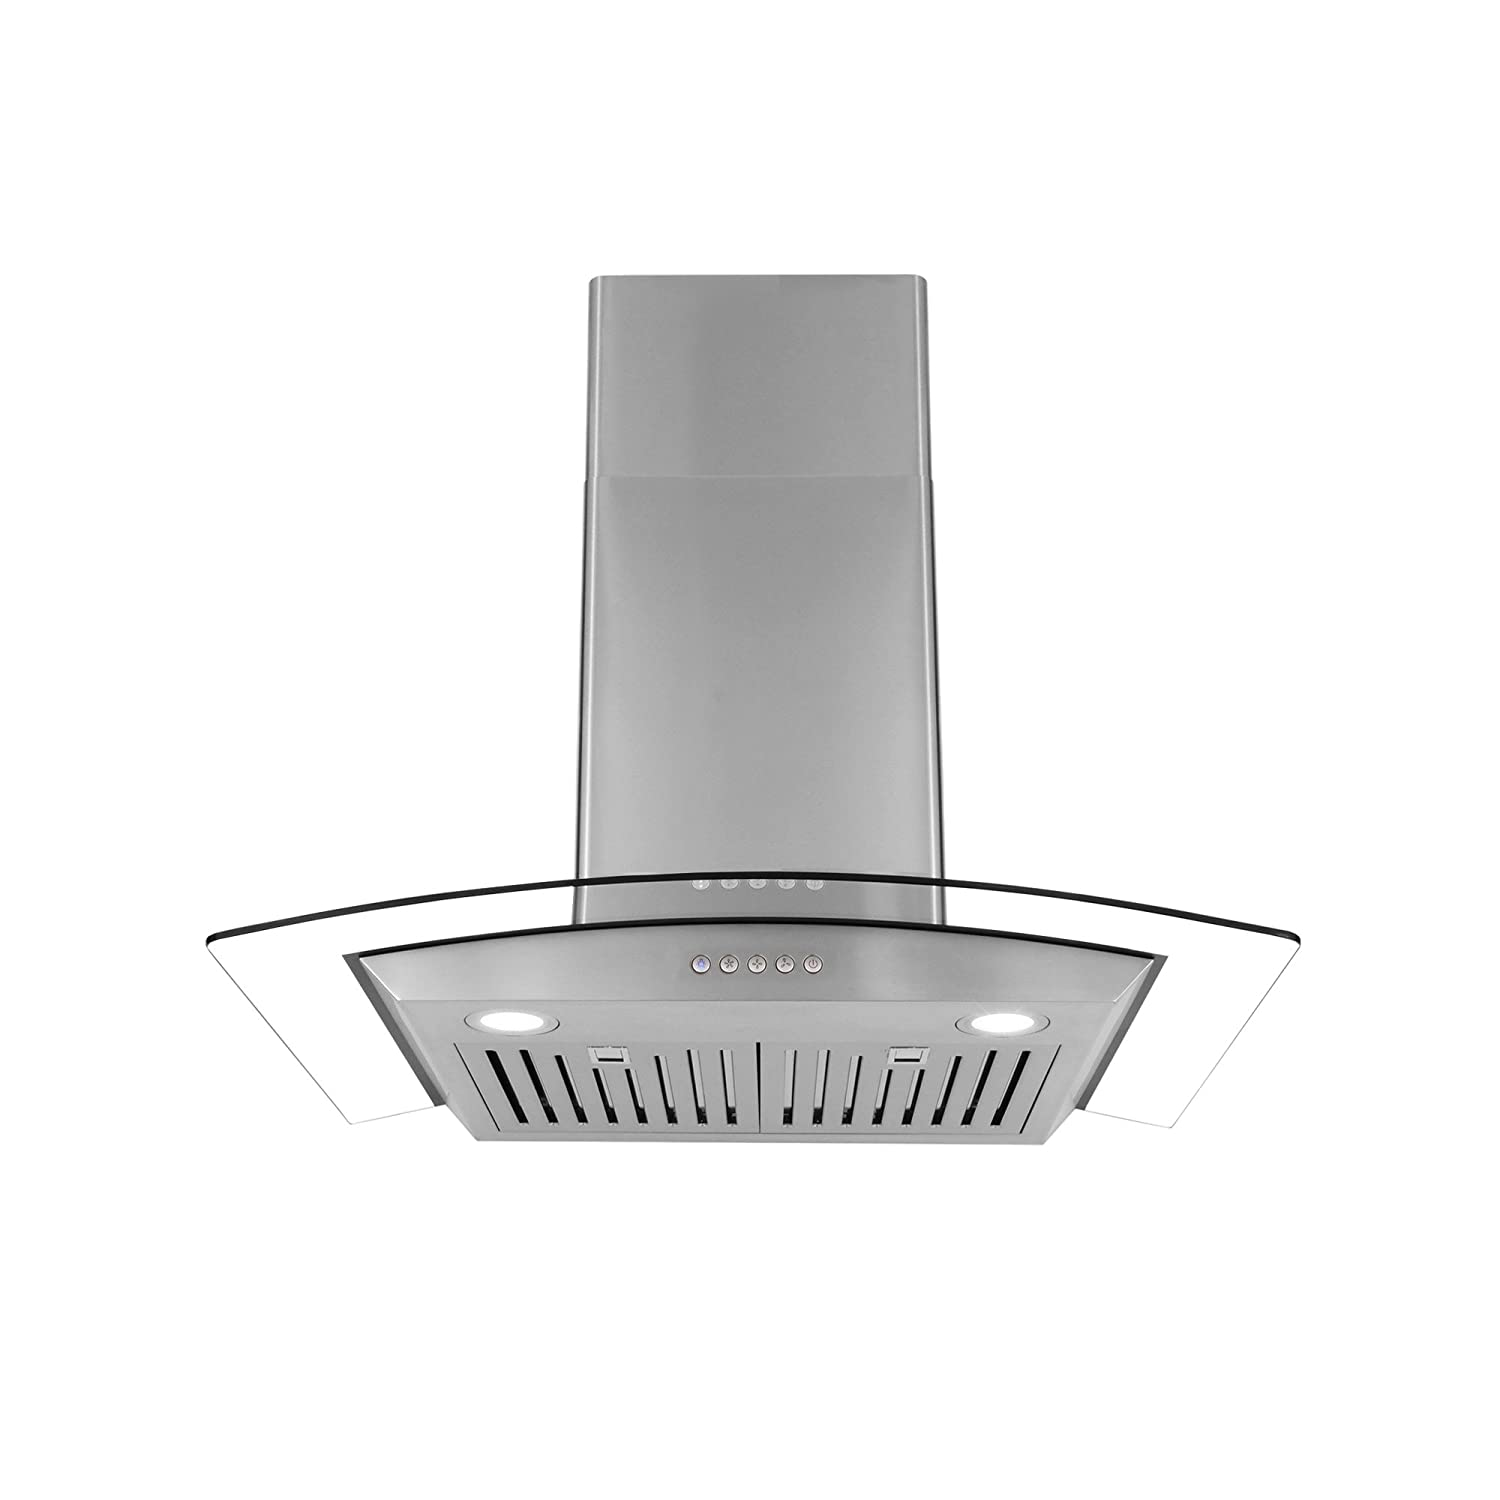 Cosmo COS-668WRC75 Range Hood 30 inches